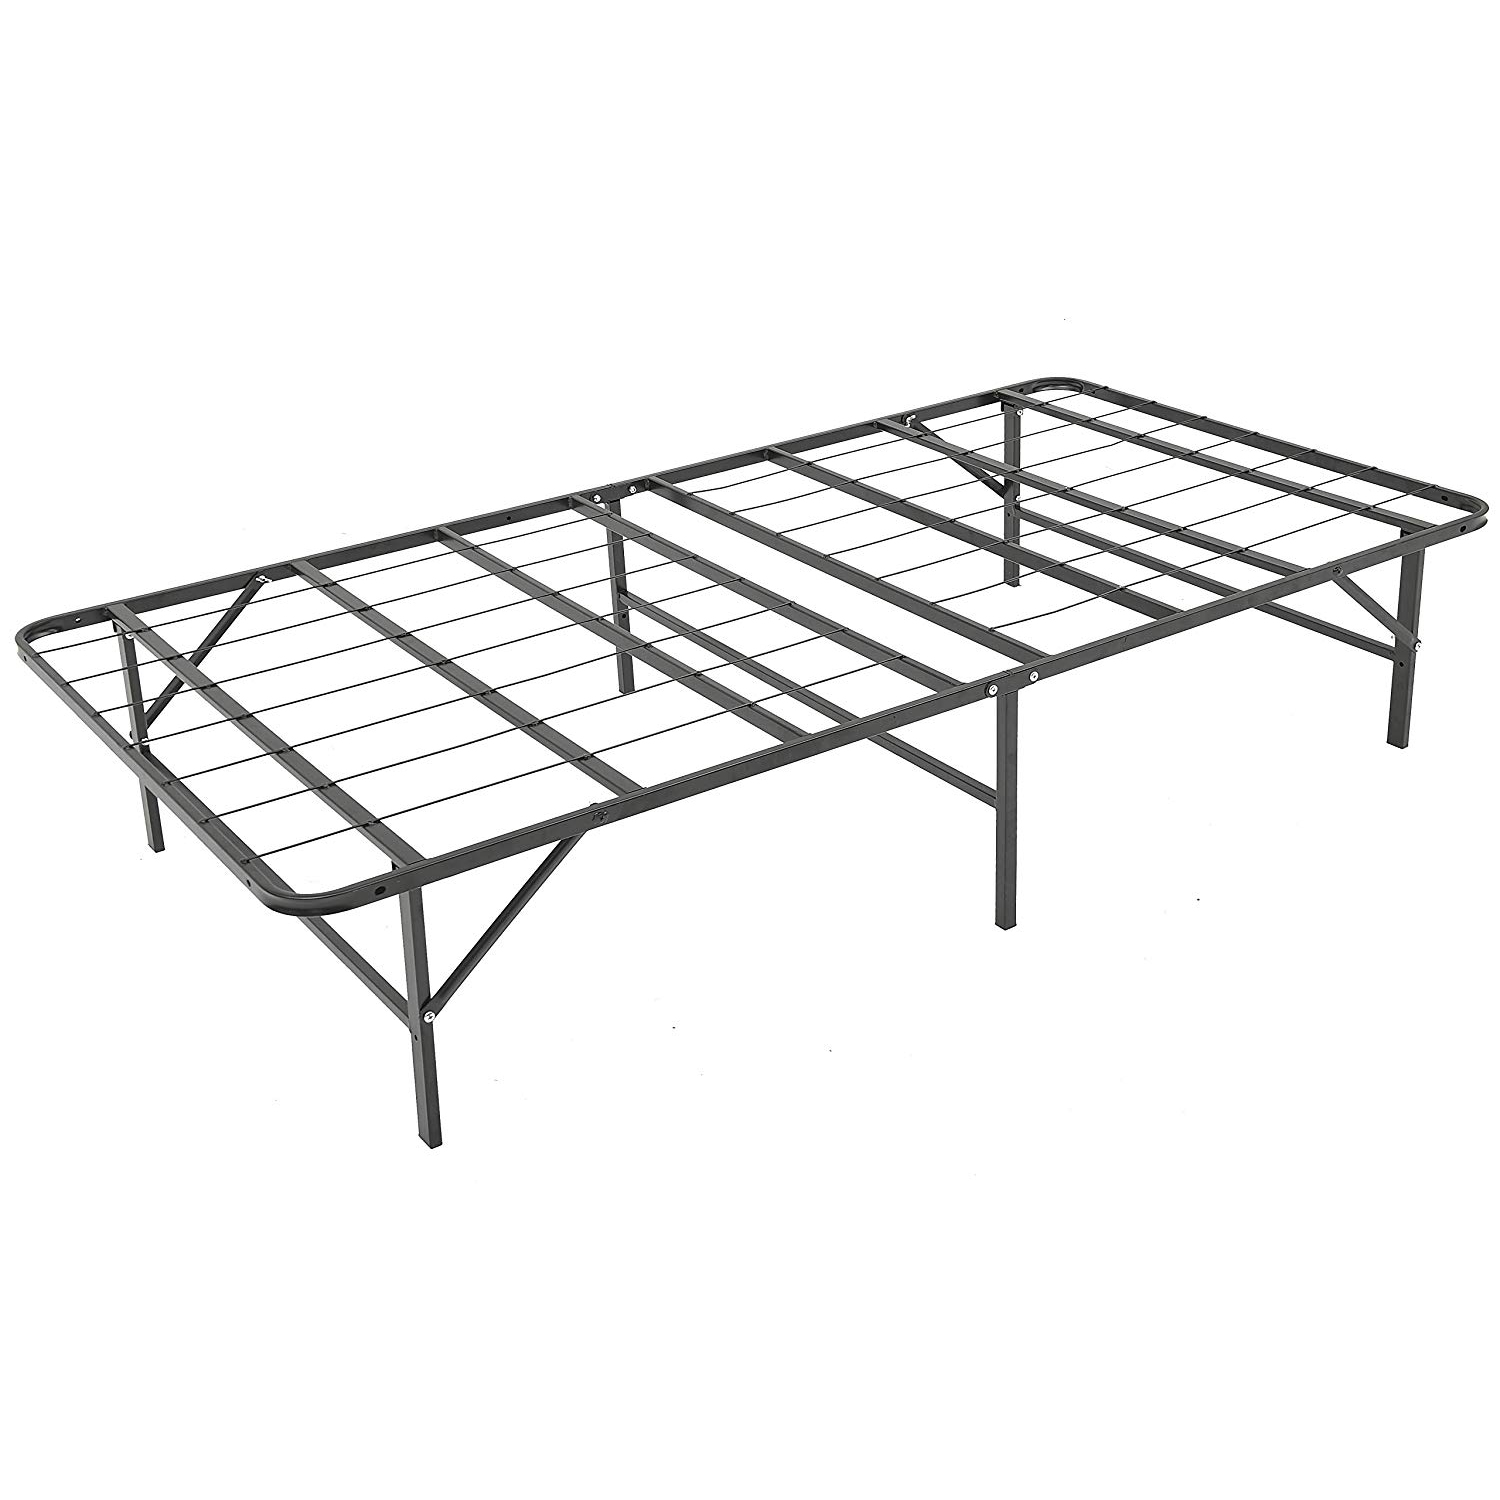 Livearty 14 Inch Twin Size Mattress Foundation Platform Bed Frame Box Spring Replacement Maximum Under Bed Storage Best Buy Canada